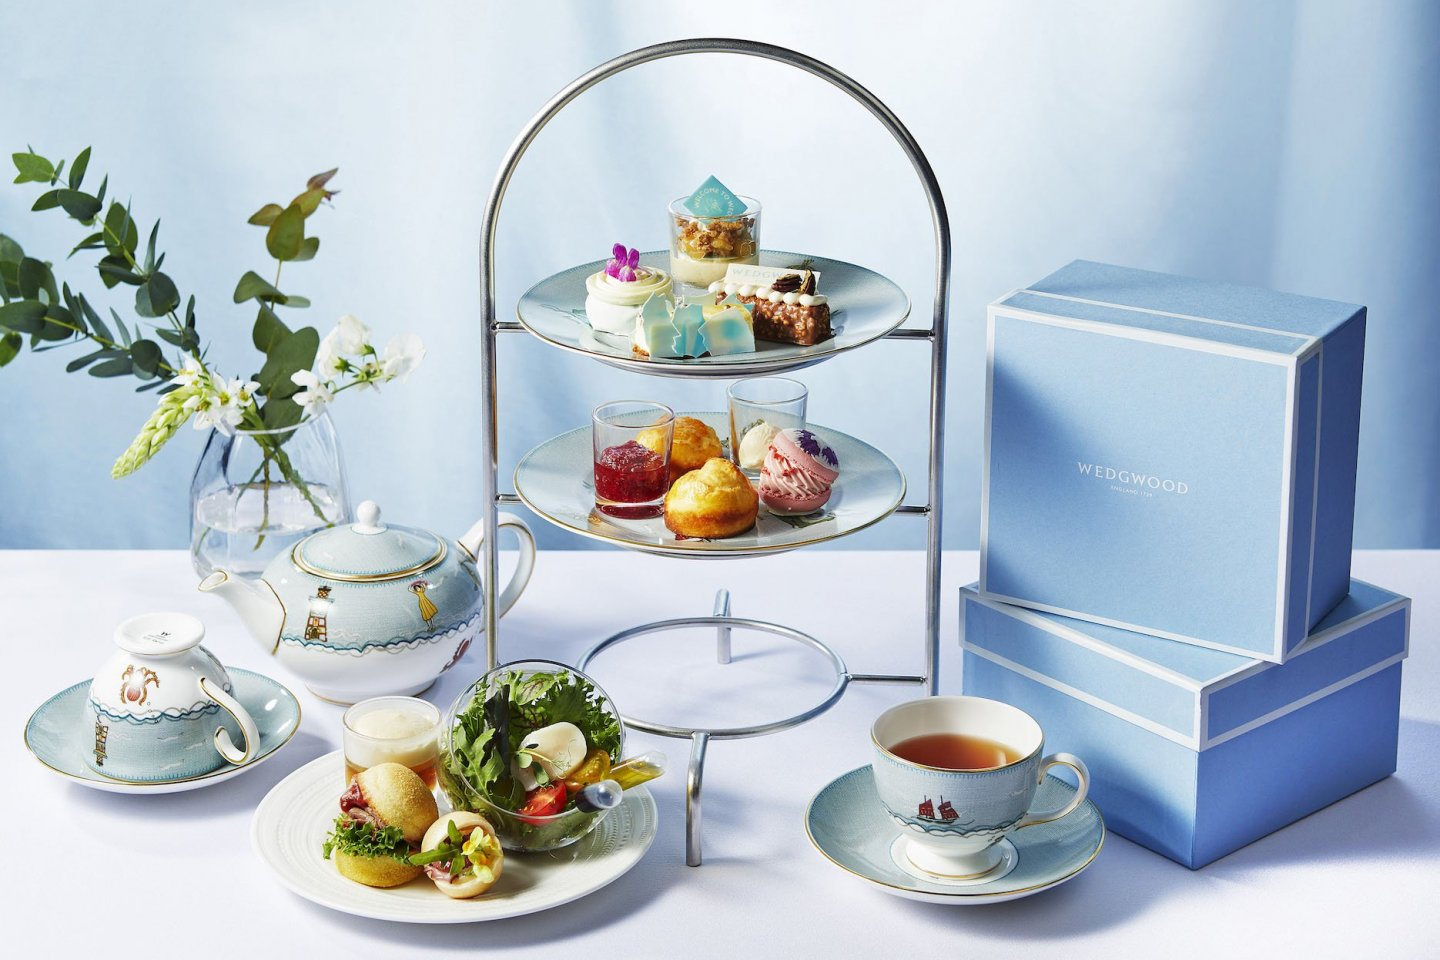 The event incorporates Wedgwood pottery and a range of English-inspired dishes